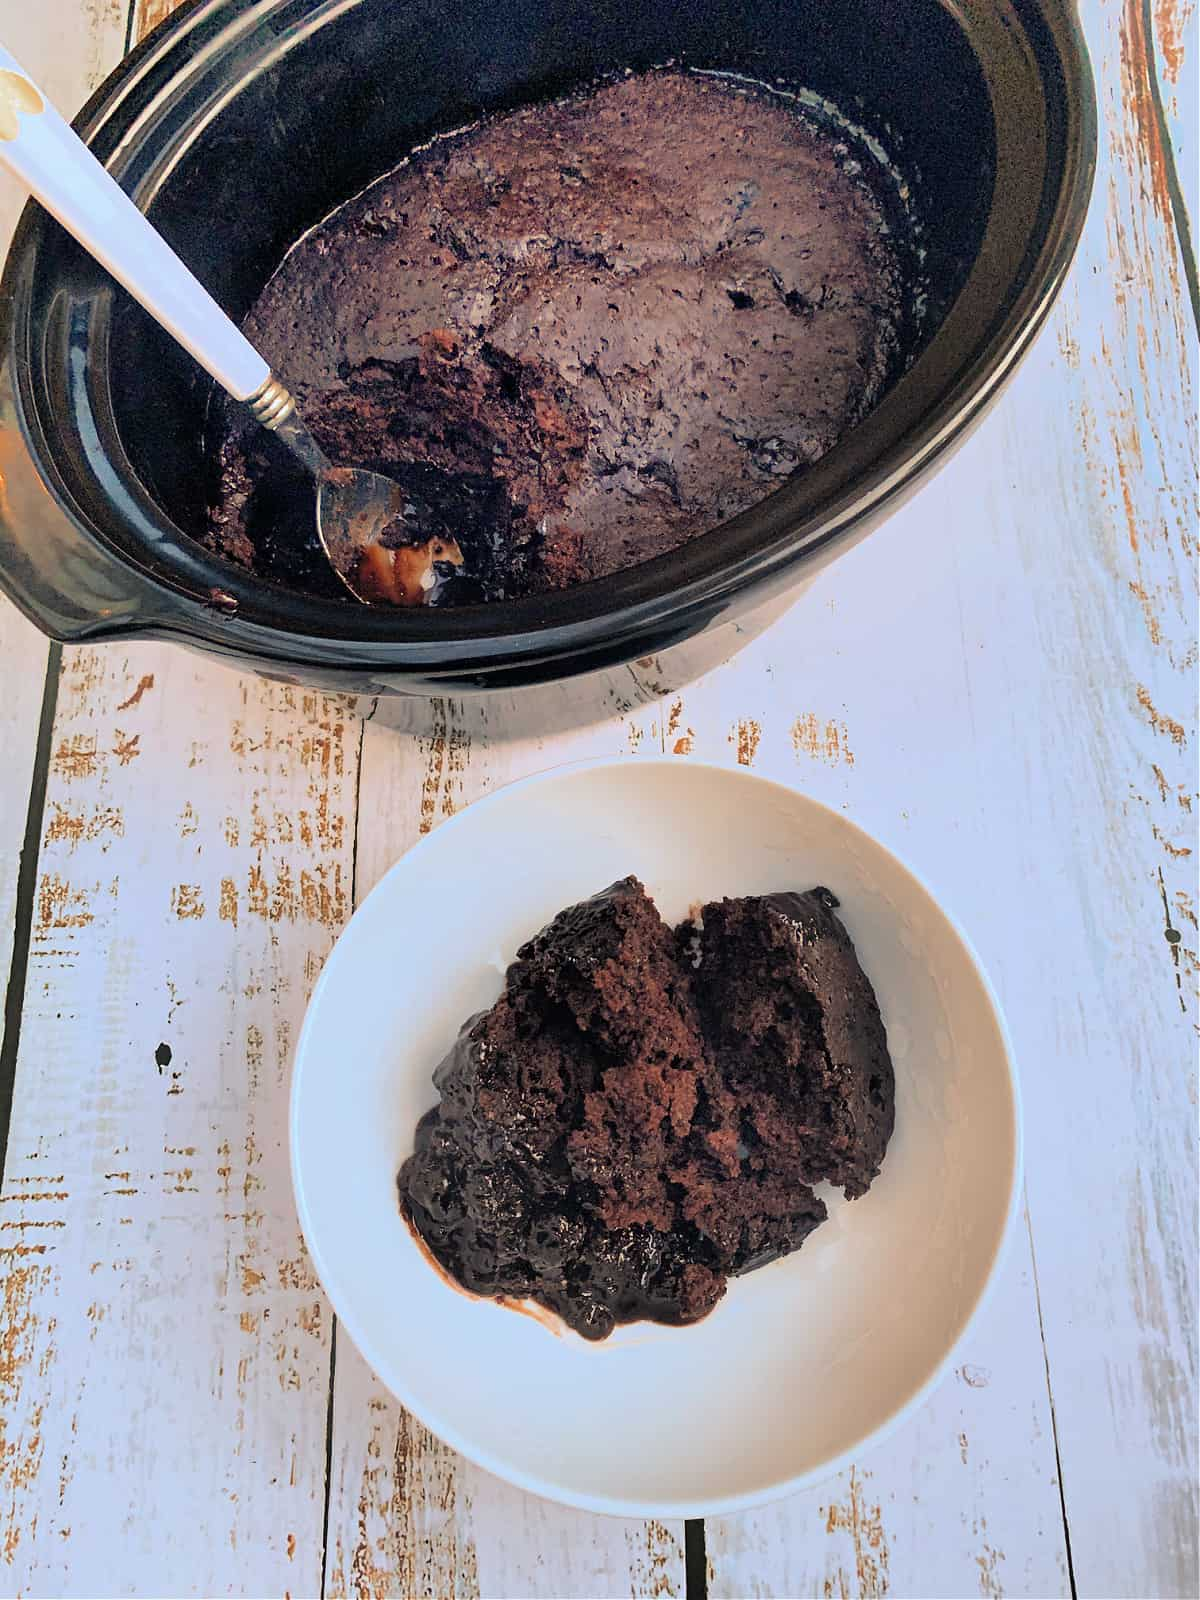 A slow cooker with chocolate lava cake and a spoon, and a bowl of the dessert in front of it.